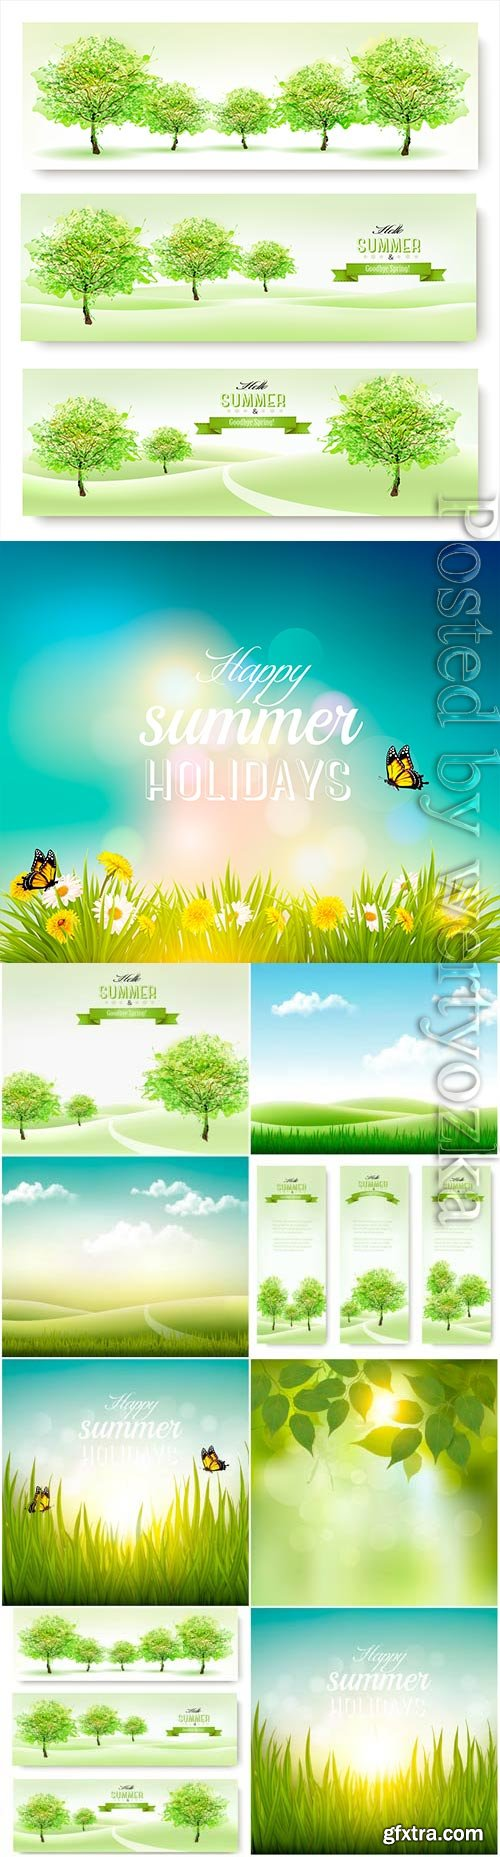 Summer banners and backgrounds with nature in vector